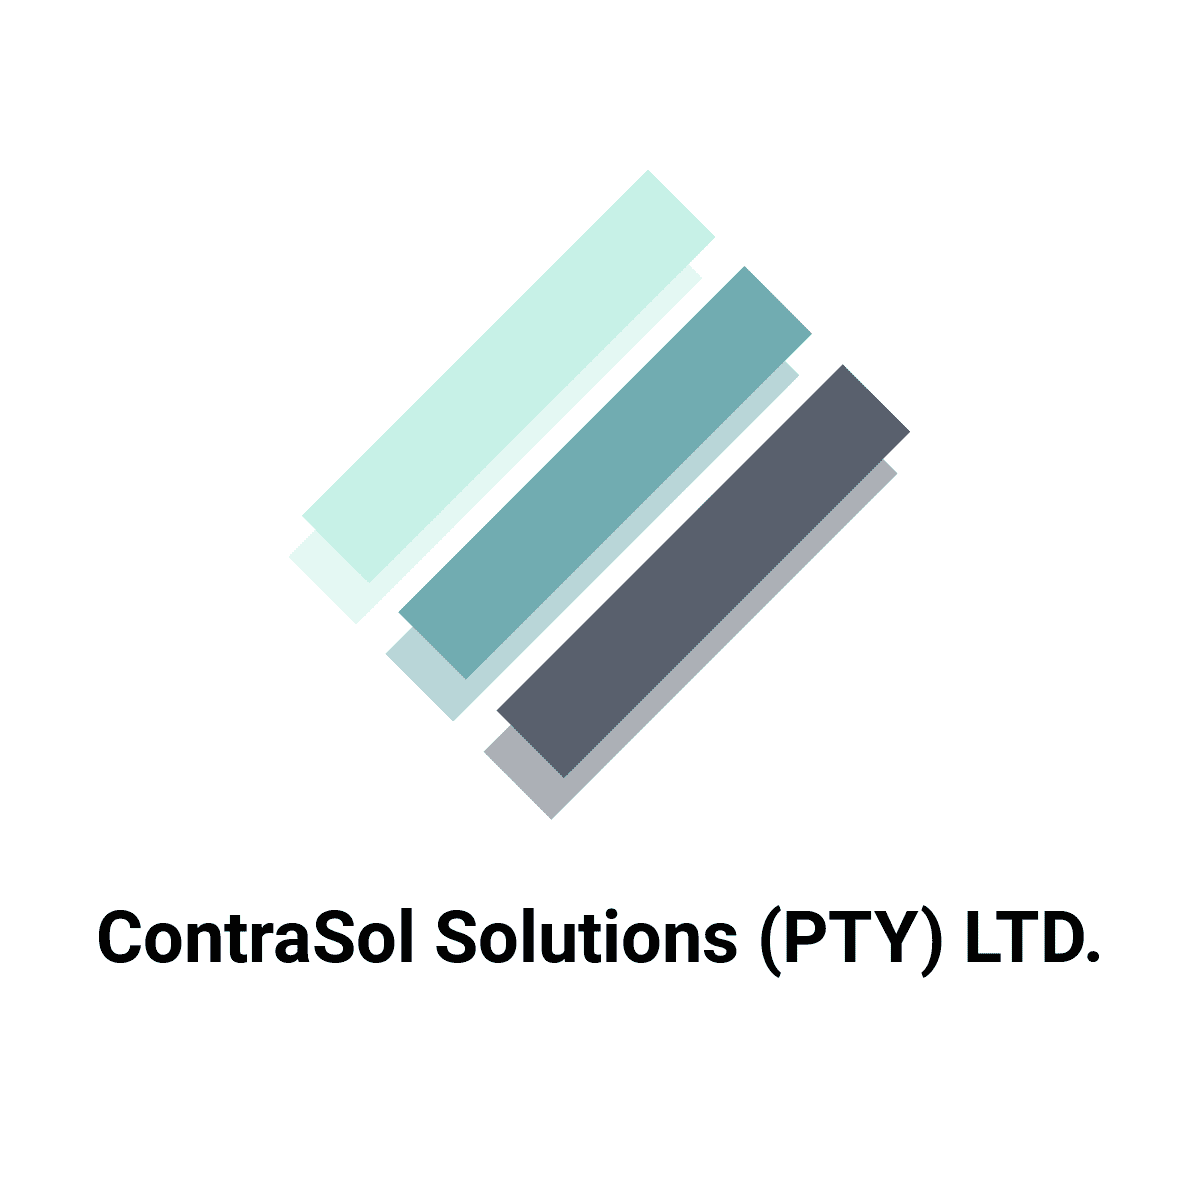 Business Listing for Contrasol Solutions (Pty) LTD